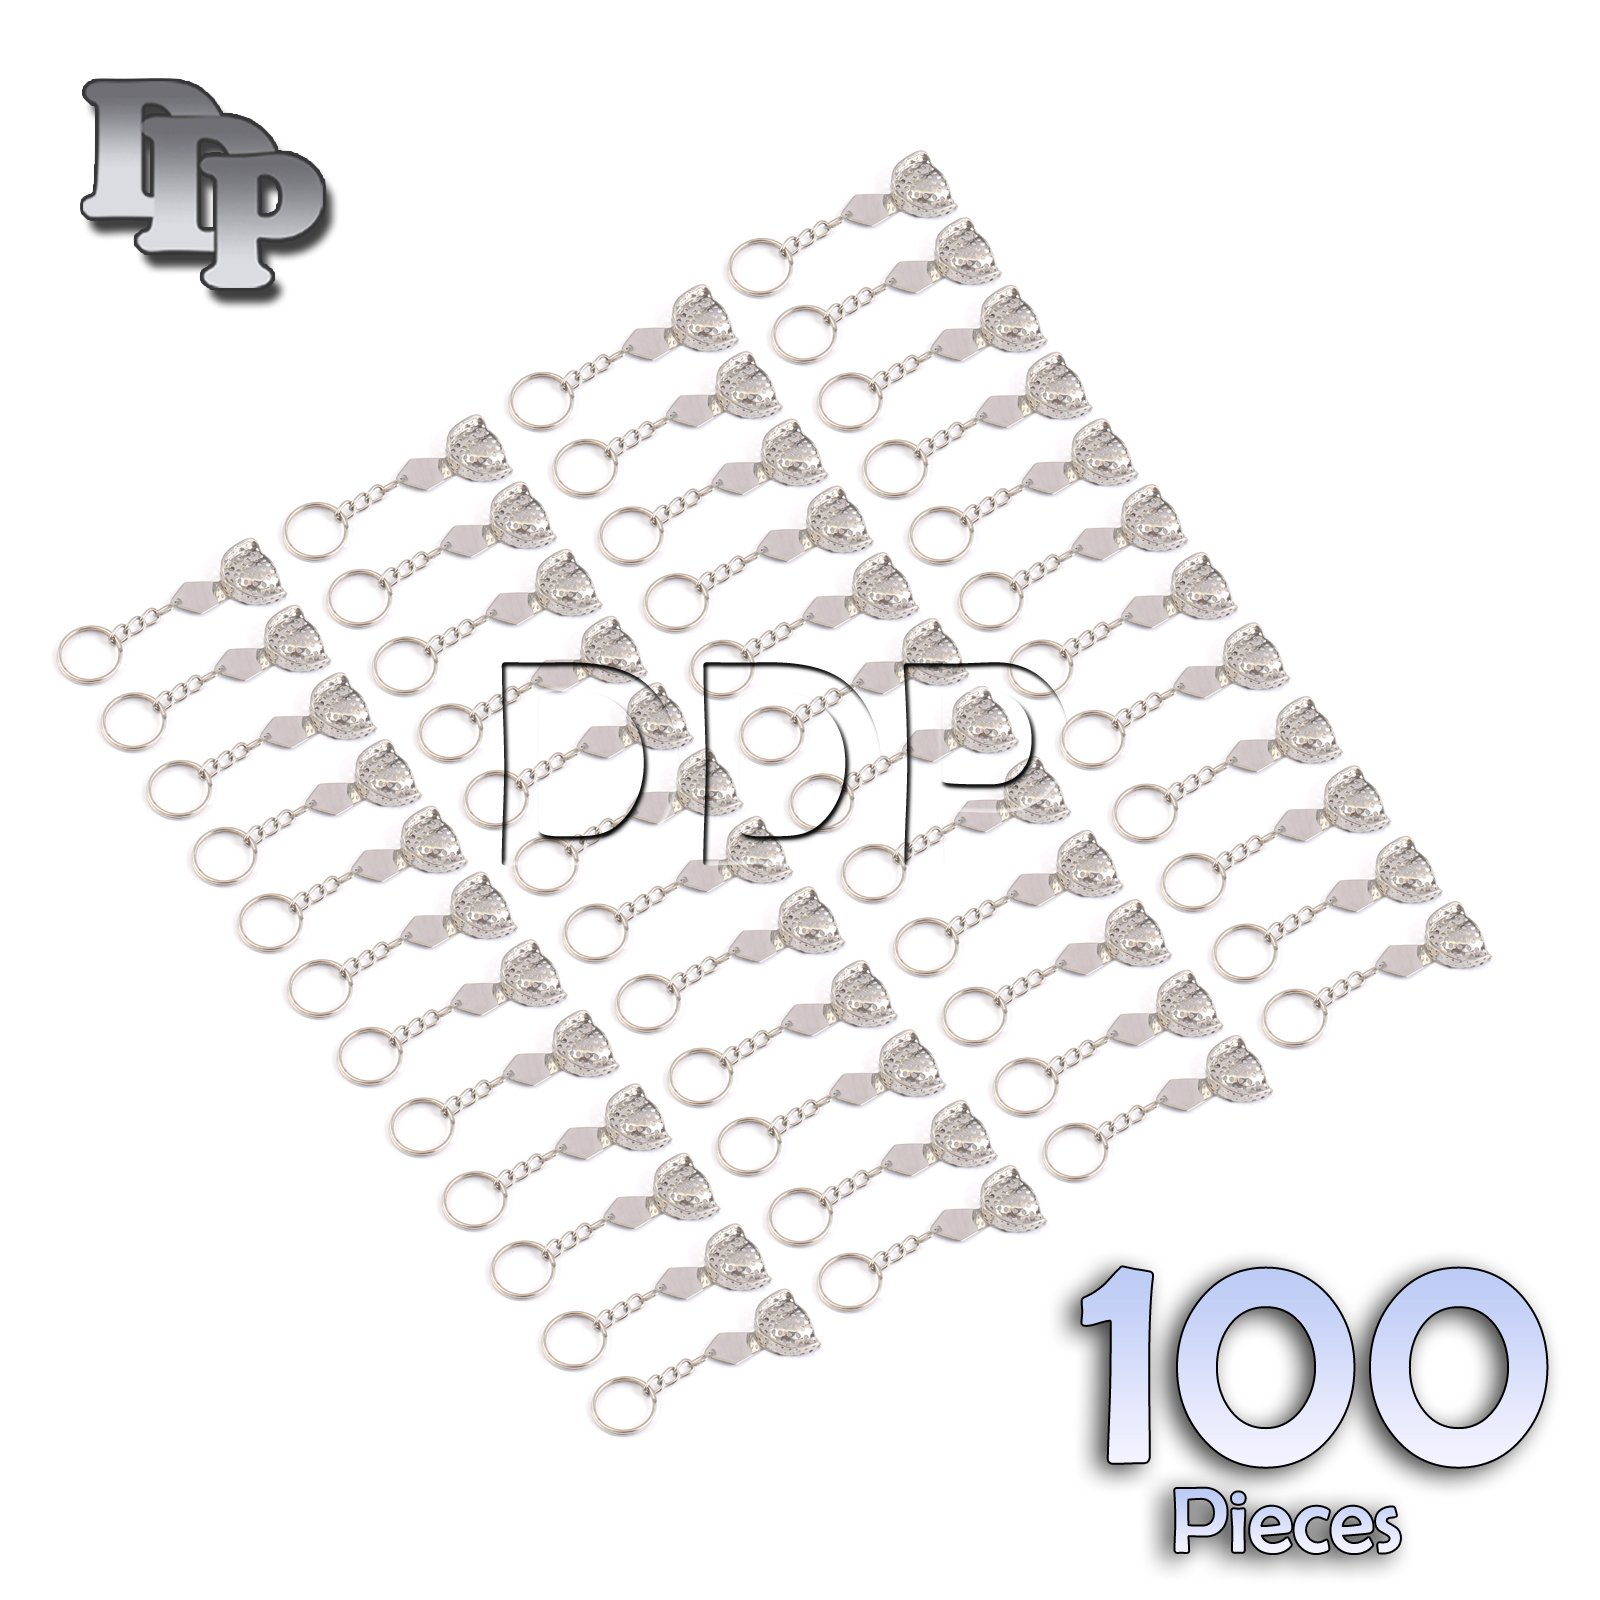 DDP SET OF 100 DENTAL IMPRESSION TRAY PERFORATED KEY CHAIN